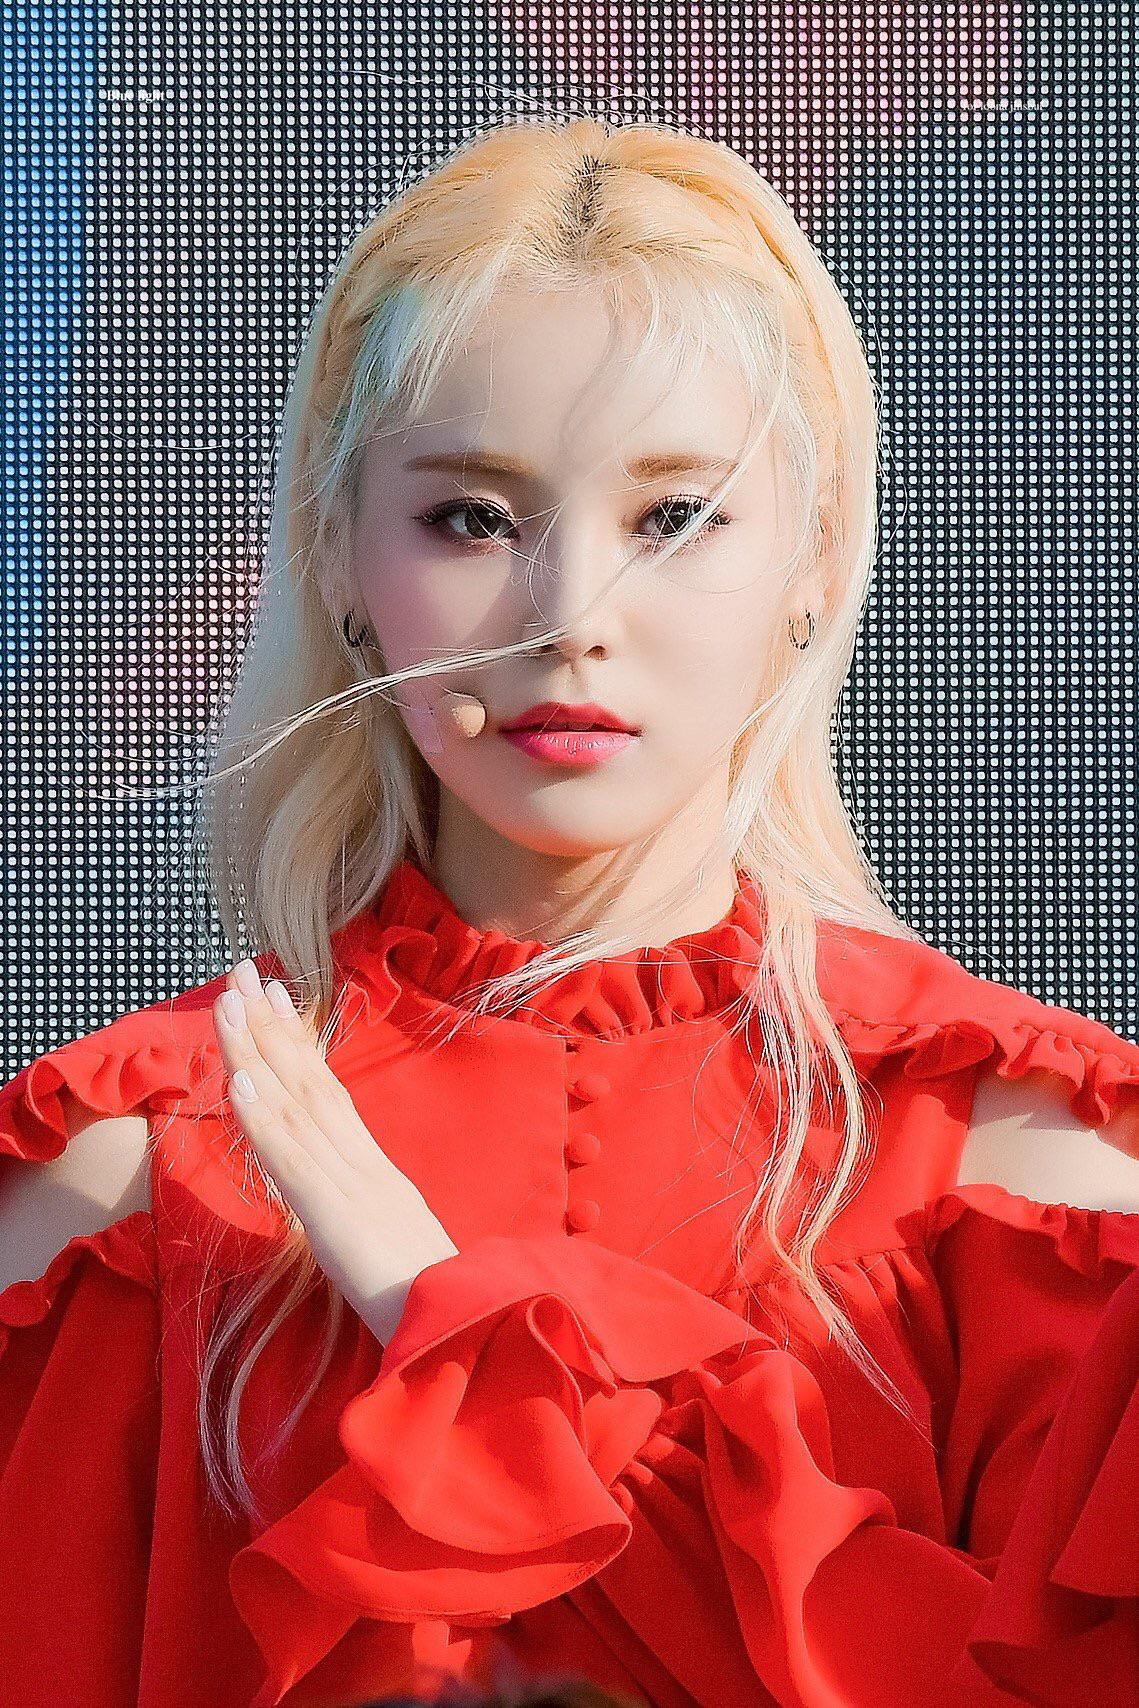 jung jinsoul  looΠΔ  page 2 of 76  asiachan kpop image